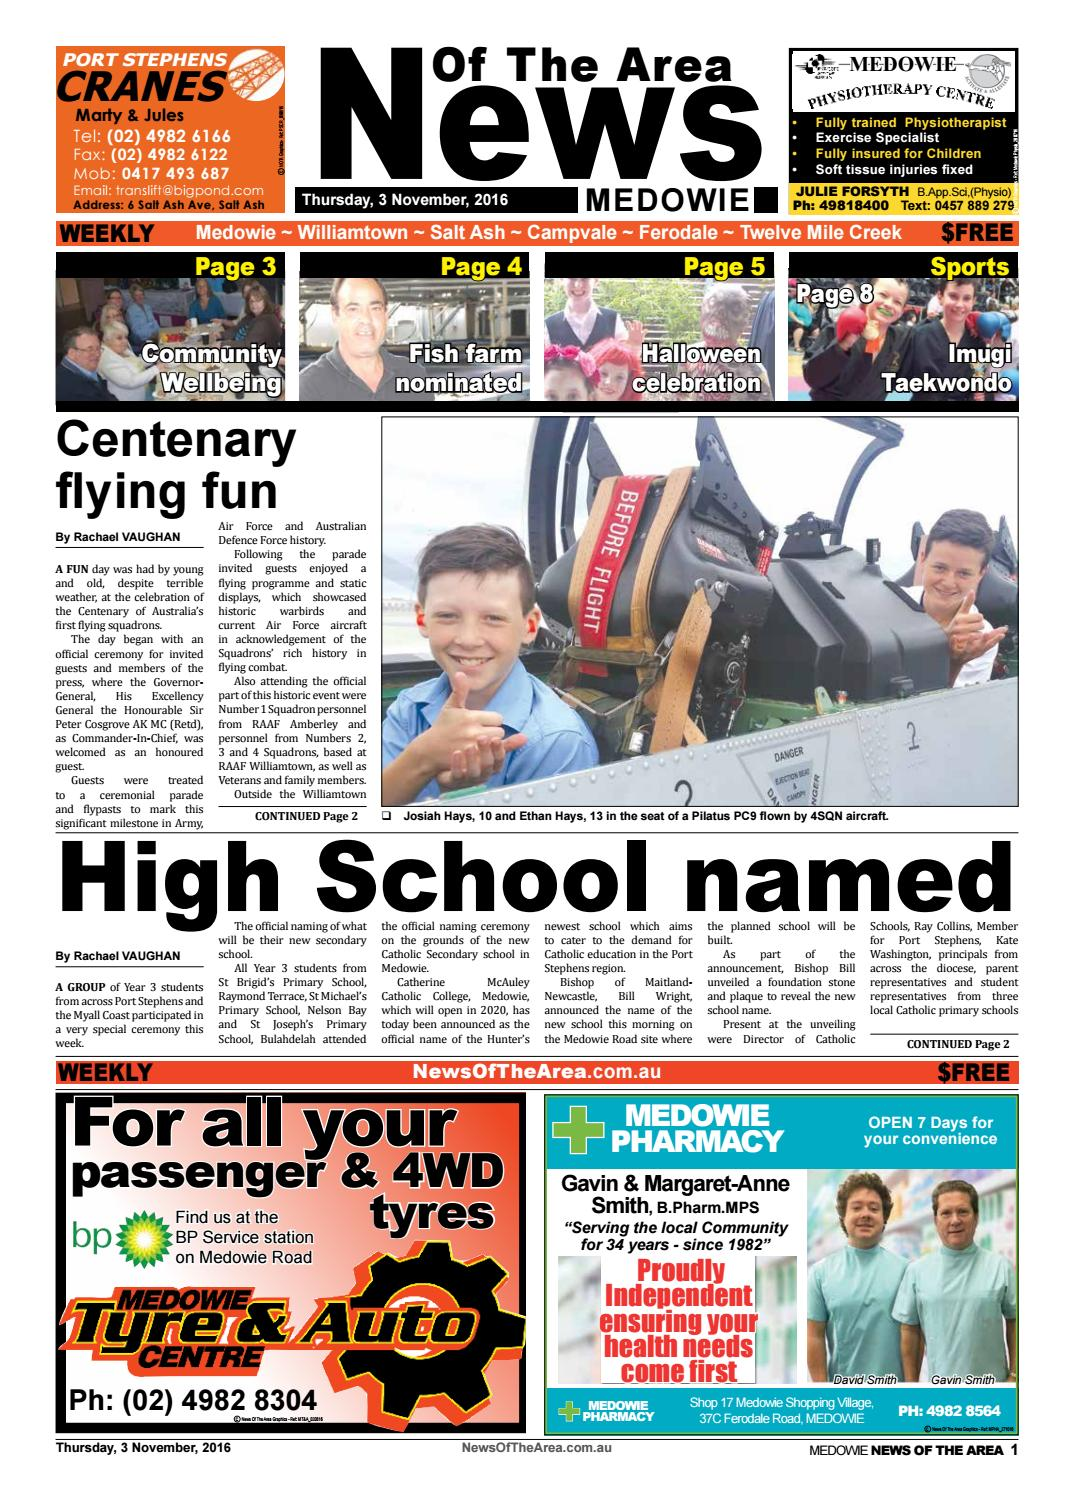 Medowie news of the area 3 november 2016 by News Of The Area - issuu